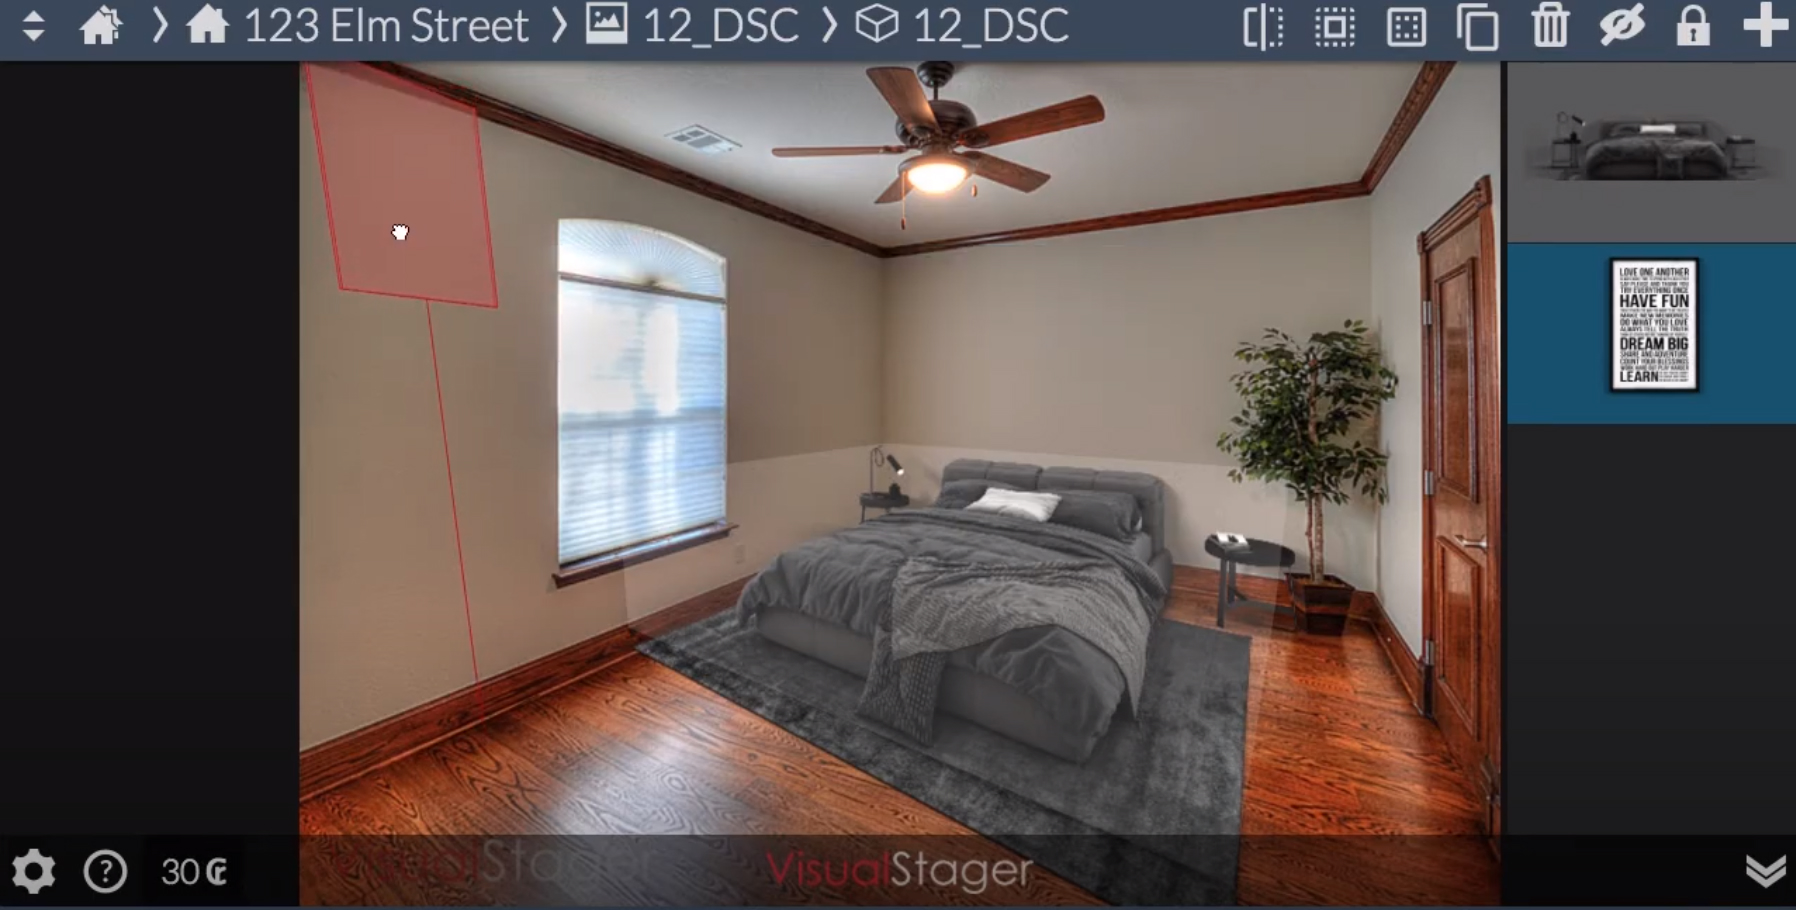 visual stager room